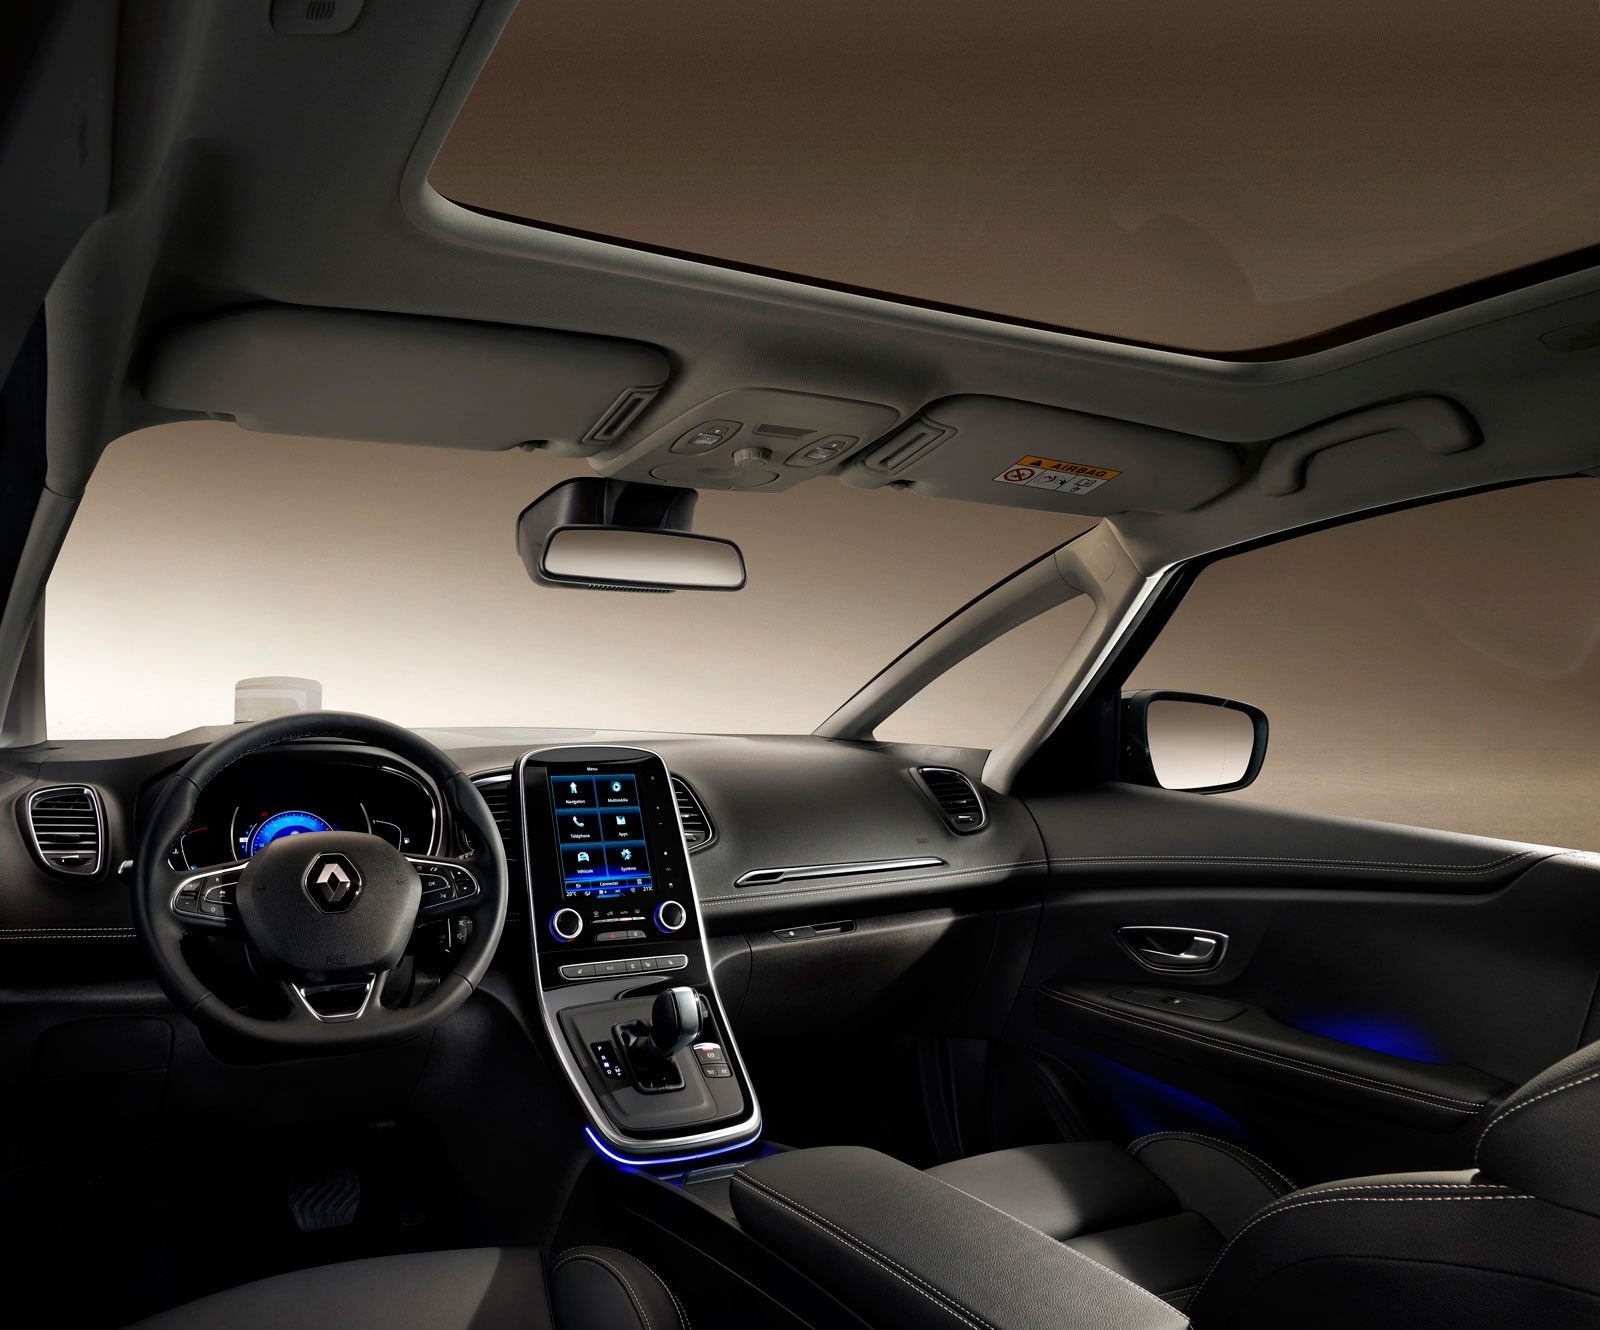 Renault Grand Scenic Interior - Car Body Design